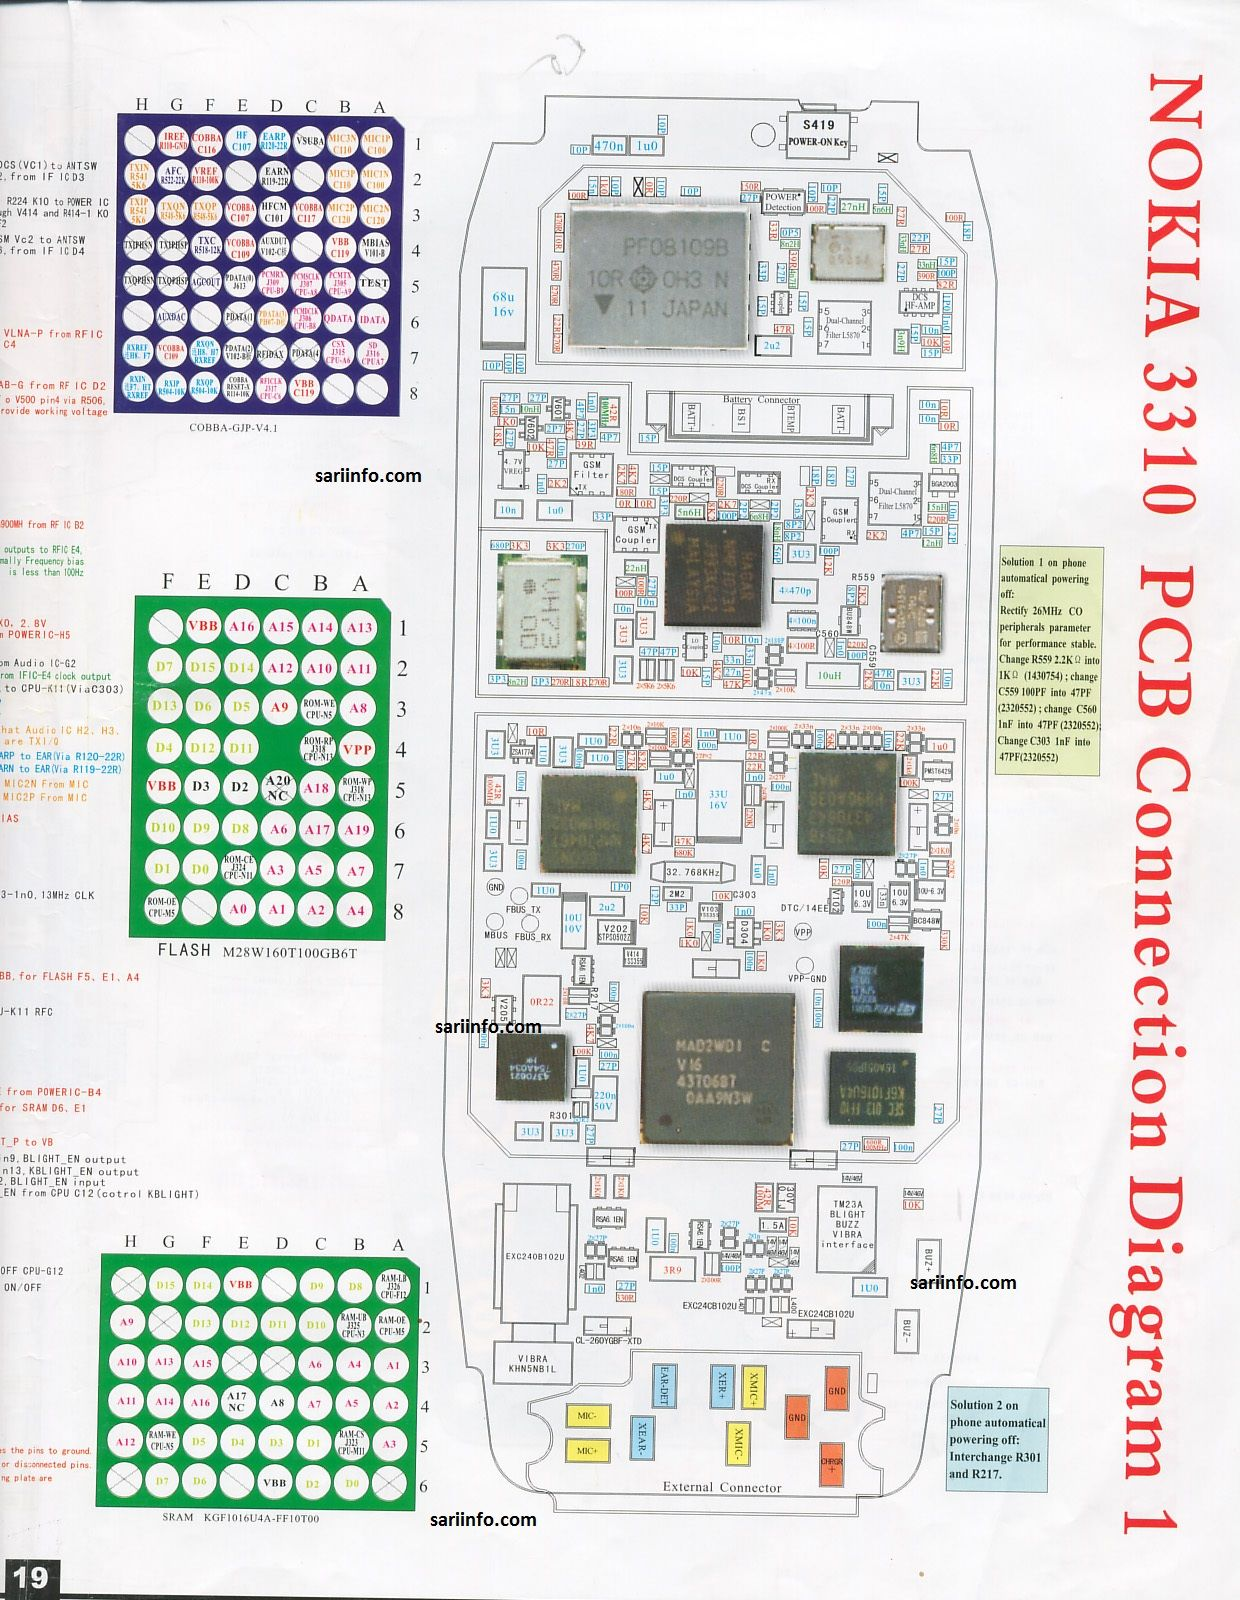 nokia 3310 pcb diagram solutions Mobiles Tablets Pinterest